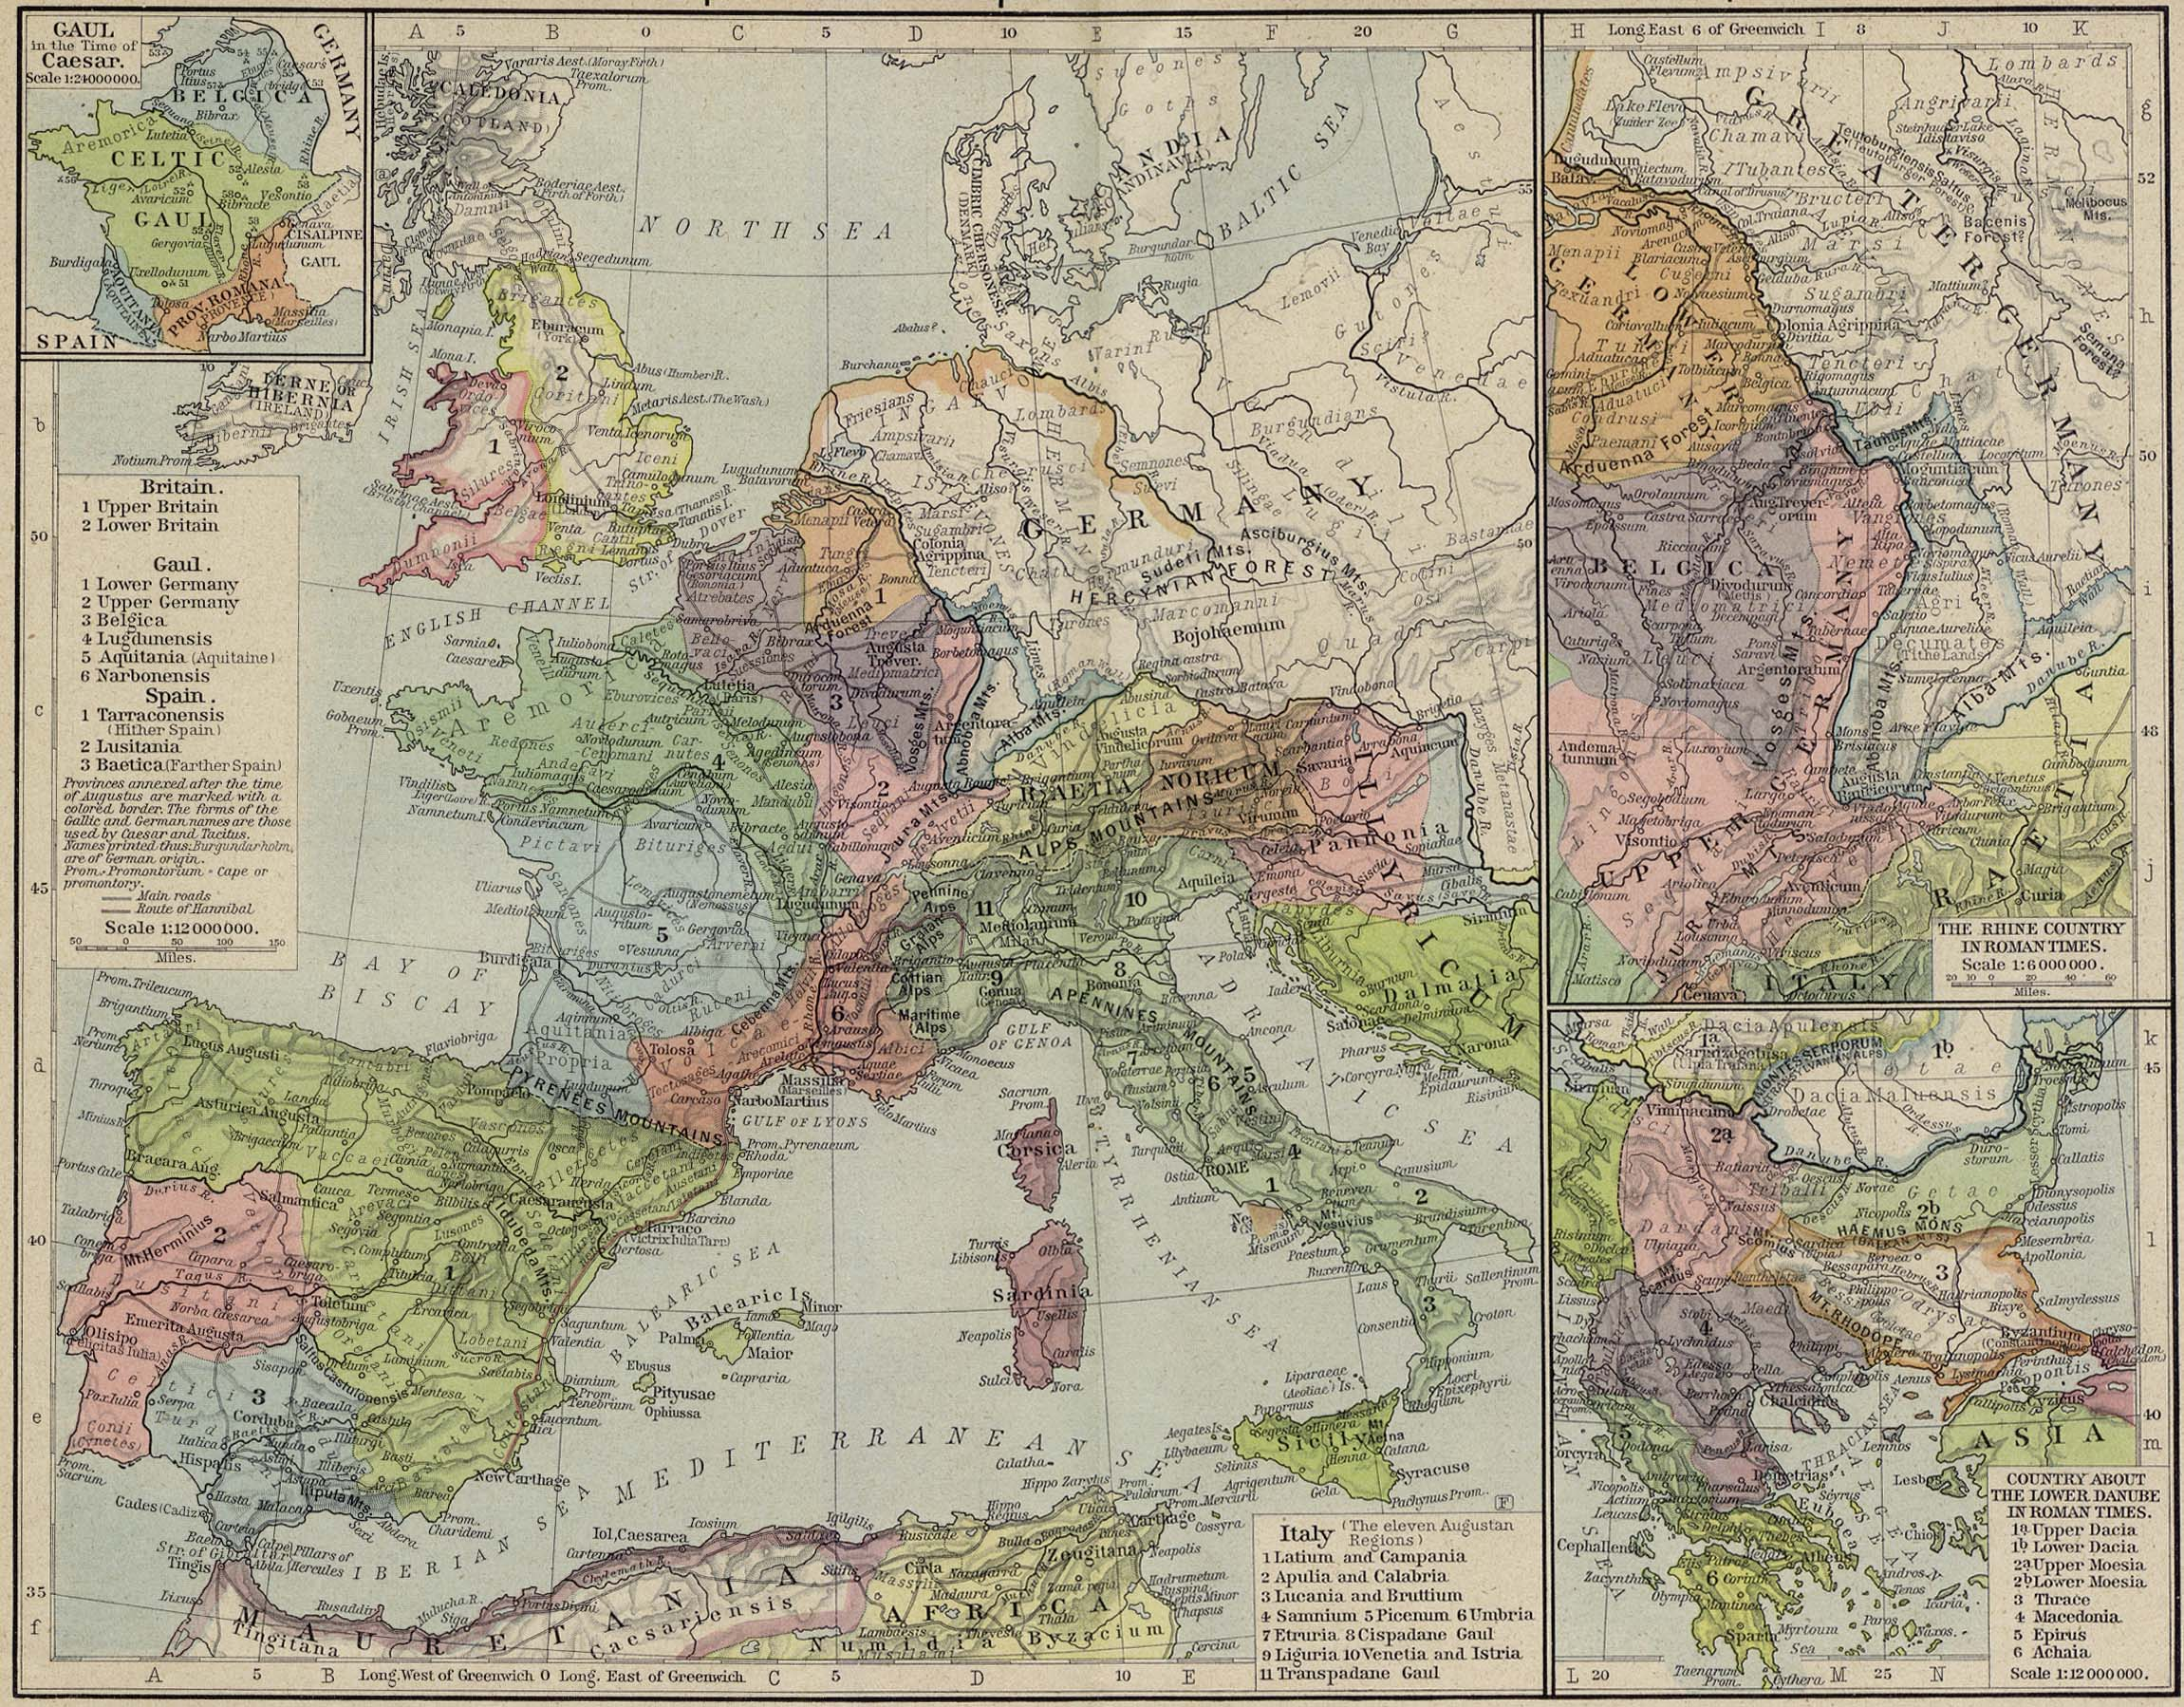 Historical Atlas by William R. Shepherd - Perry-Castañeda ... on map of europe 1200, map of europe showing prussia, map of europe during the enlightenment, map of europe 1938, map of new york in the 1700s, map of europe 1100, map of europe in medieval times, map of europe 1800, map of europe 900, map of europe renaissance, map of europe 1648, map of europe bodies of water, map of europe world war ii, map of europe 1000, map of europe 1300, map of europe in 1918, map of europe 1400, map of europe during napoleonic era, map of europe after 1871, map of europe 1500,